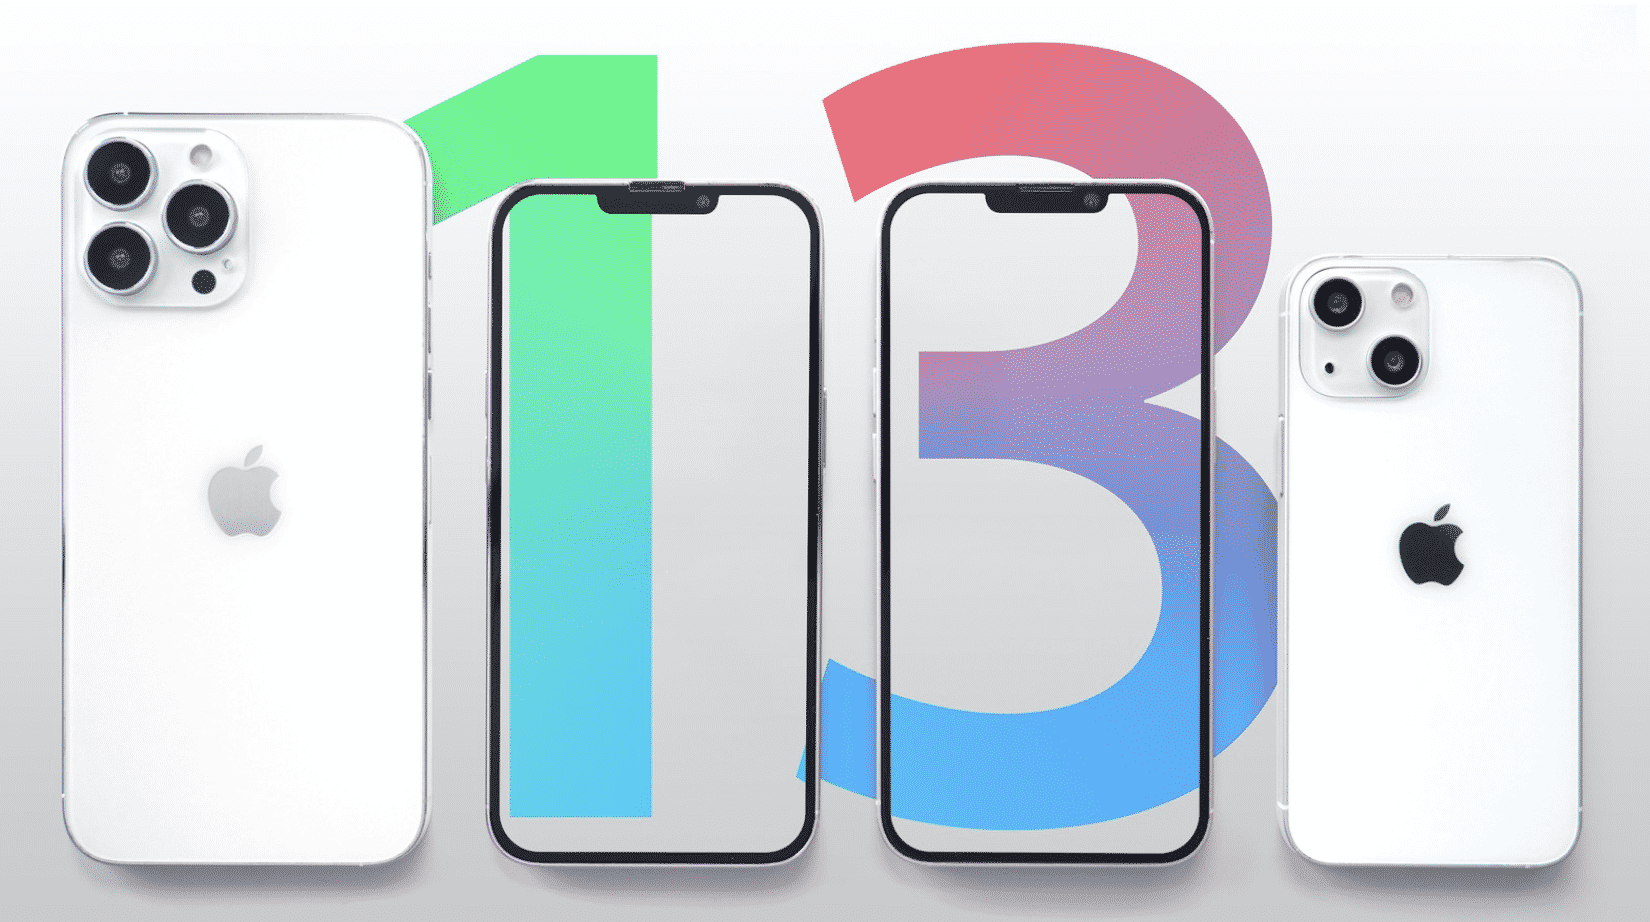 iPhone 13 may have 128GB storage minimum, 1TB for Pro